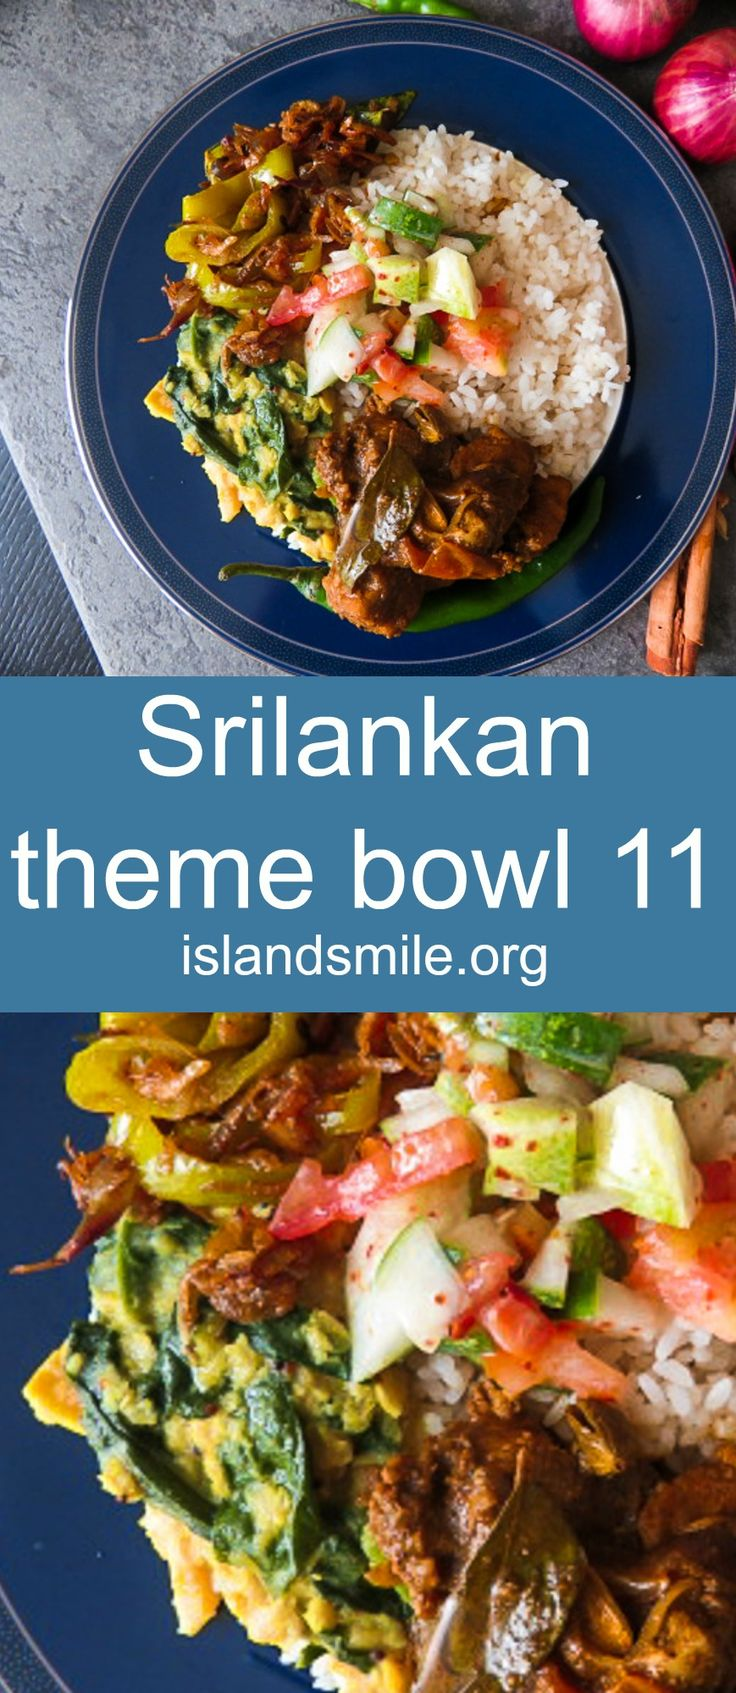 370 best Sri Lankan recipes images on Pinterest | Sri lankan food ...